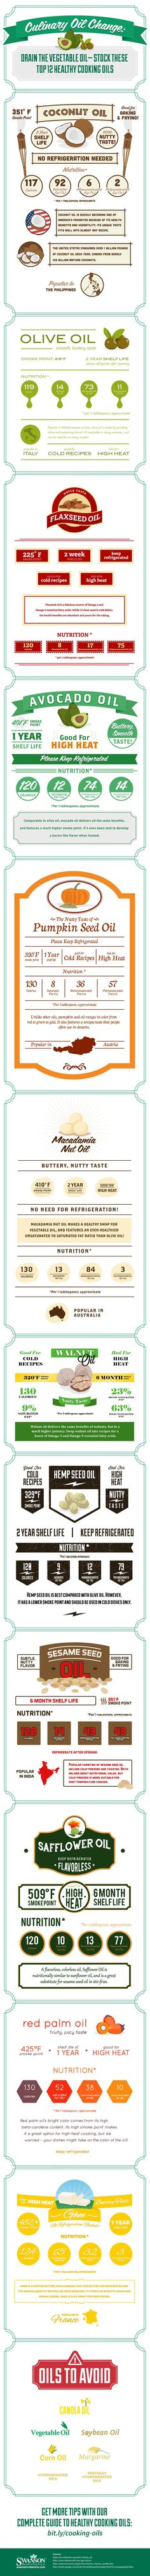 TOP HEALTHY COOKING OILS INFOGRAPHIC – A complete comparison guide to the top healthy cooking oils—health benefits, tips, recipes & video demos.